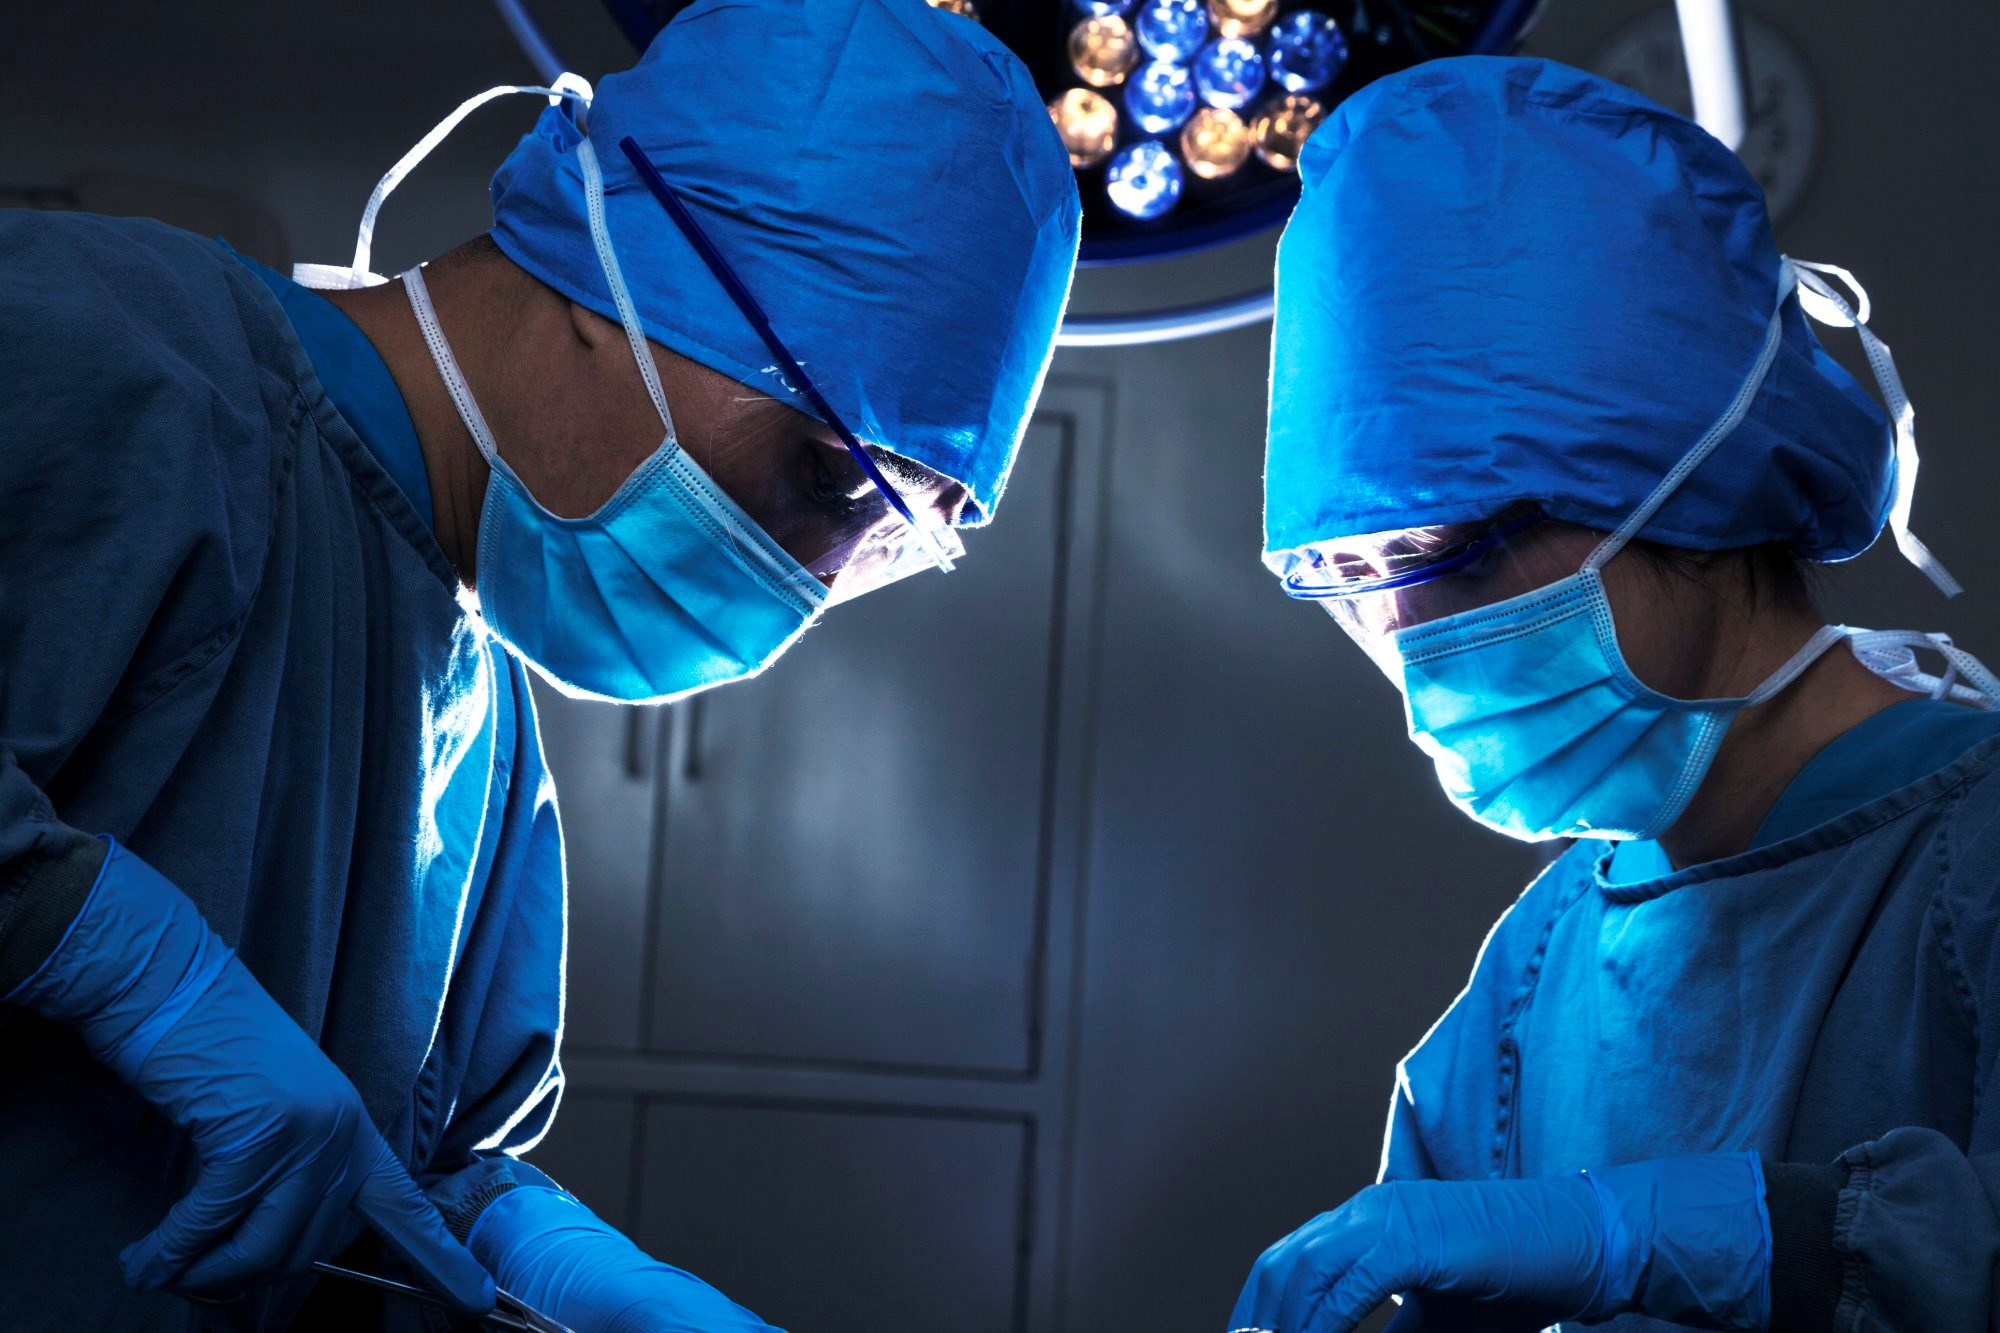 Patient Complaints of Surgeon Attitude Tied to Complications